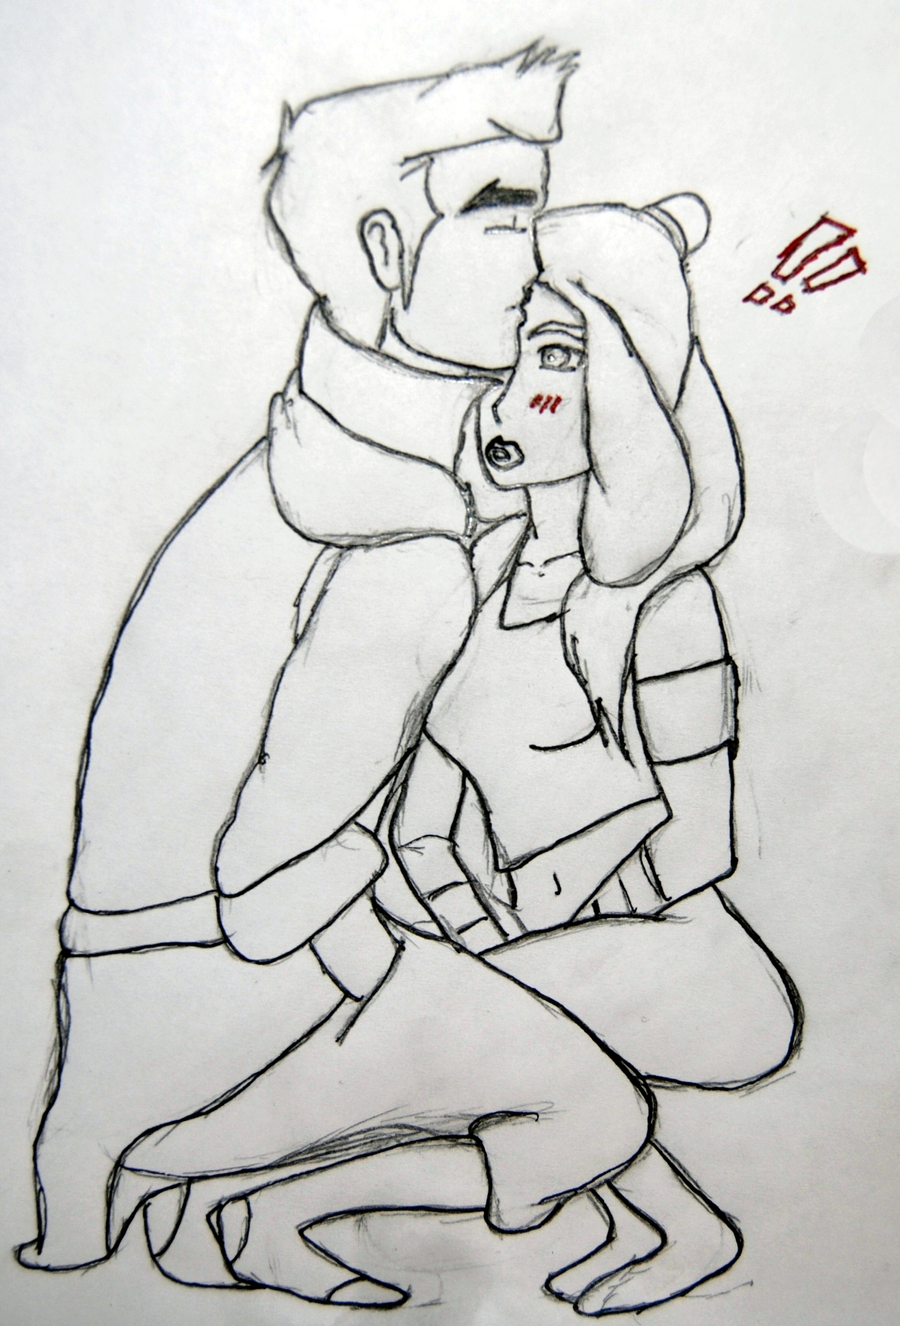 Kiss on forehead sketch